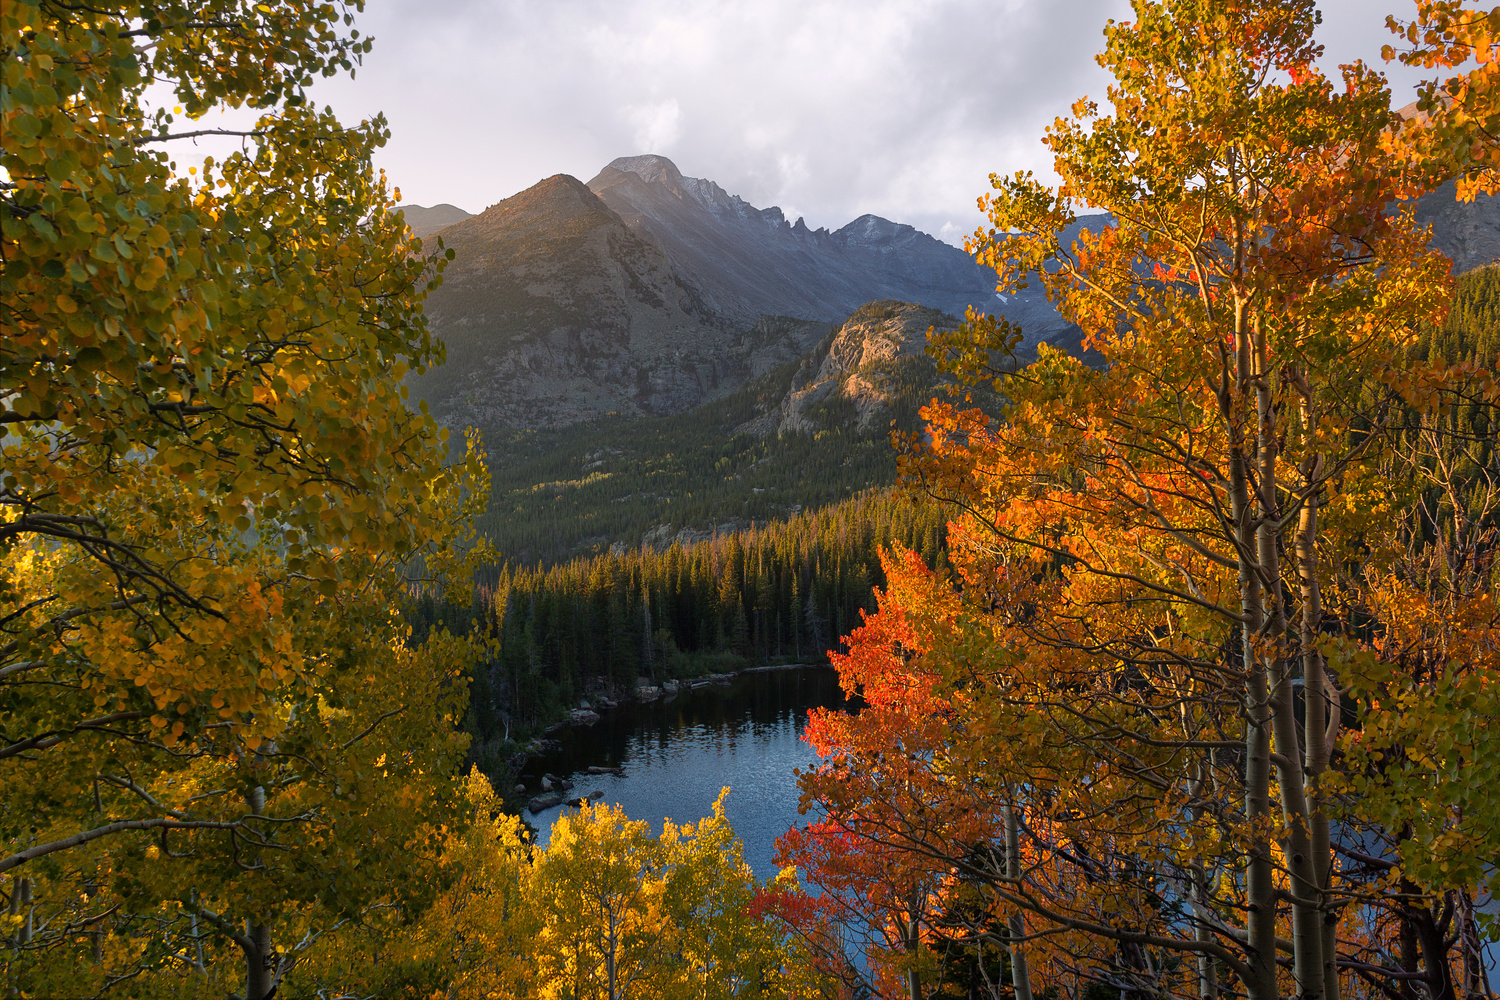 Rocky Mountain Beauty in the Fall by Nick Souvall